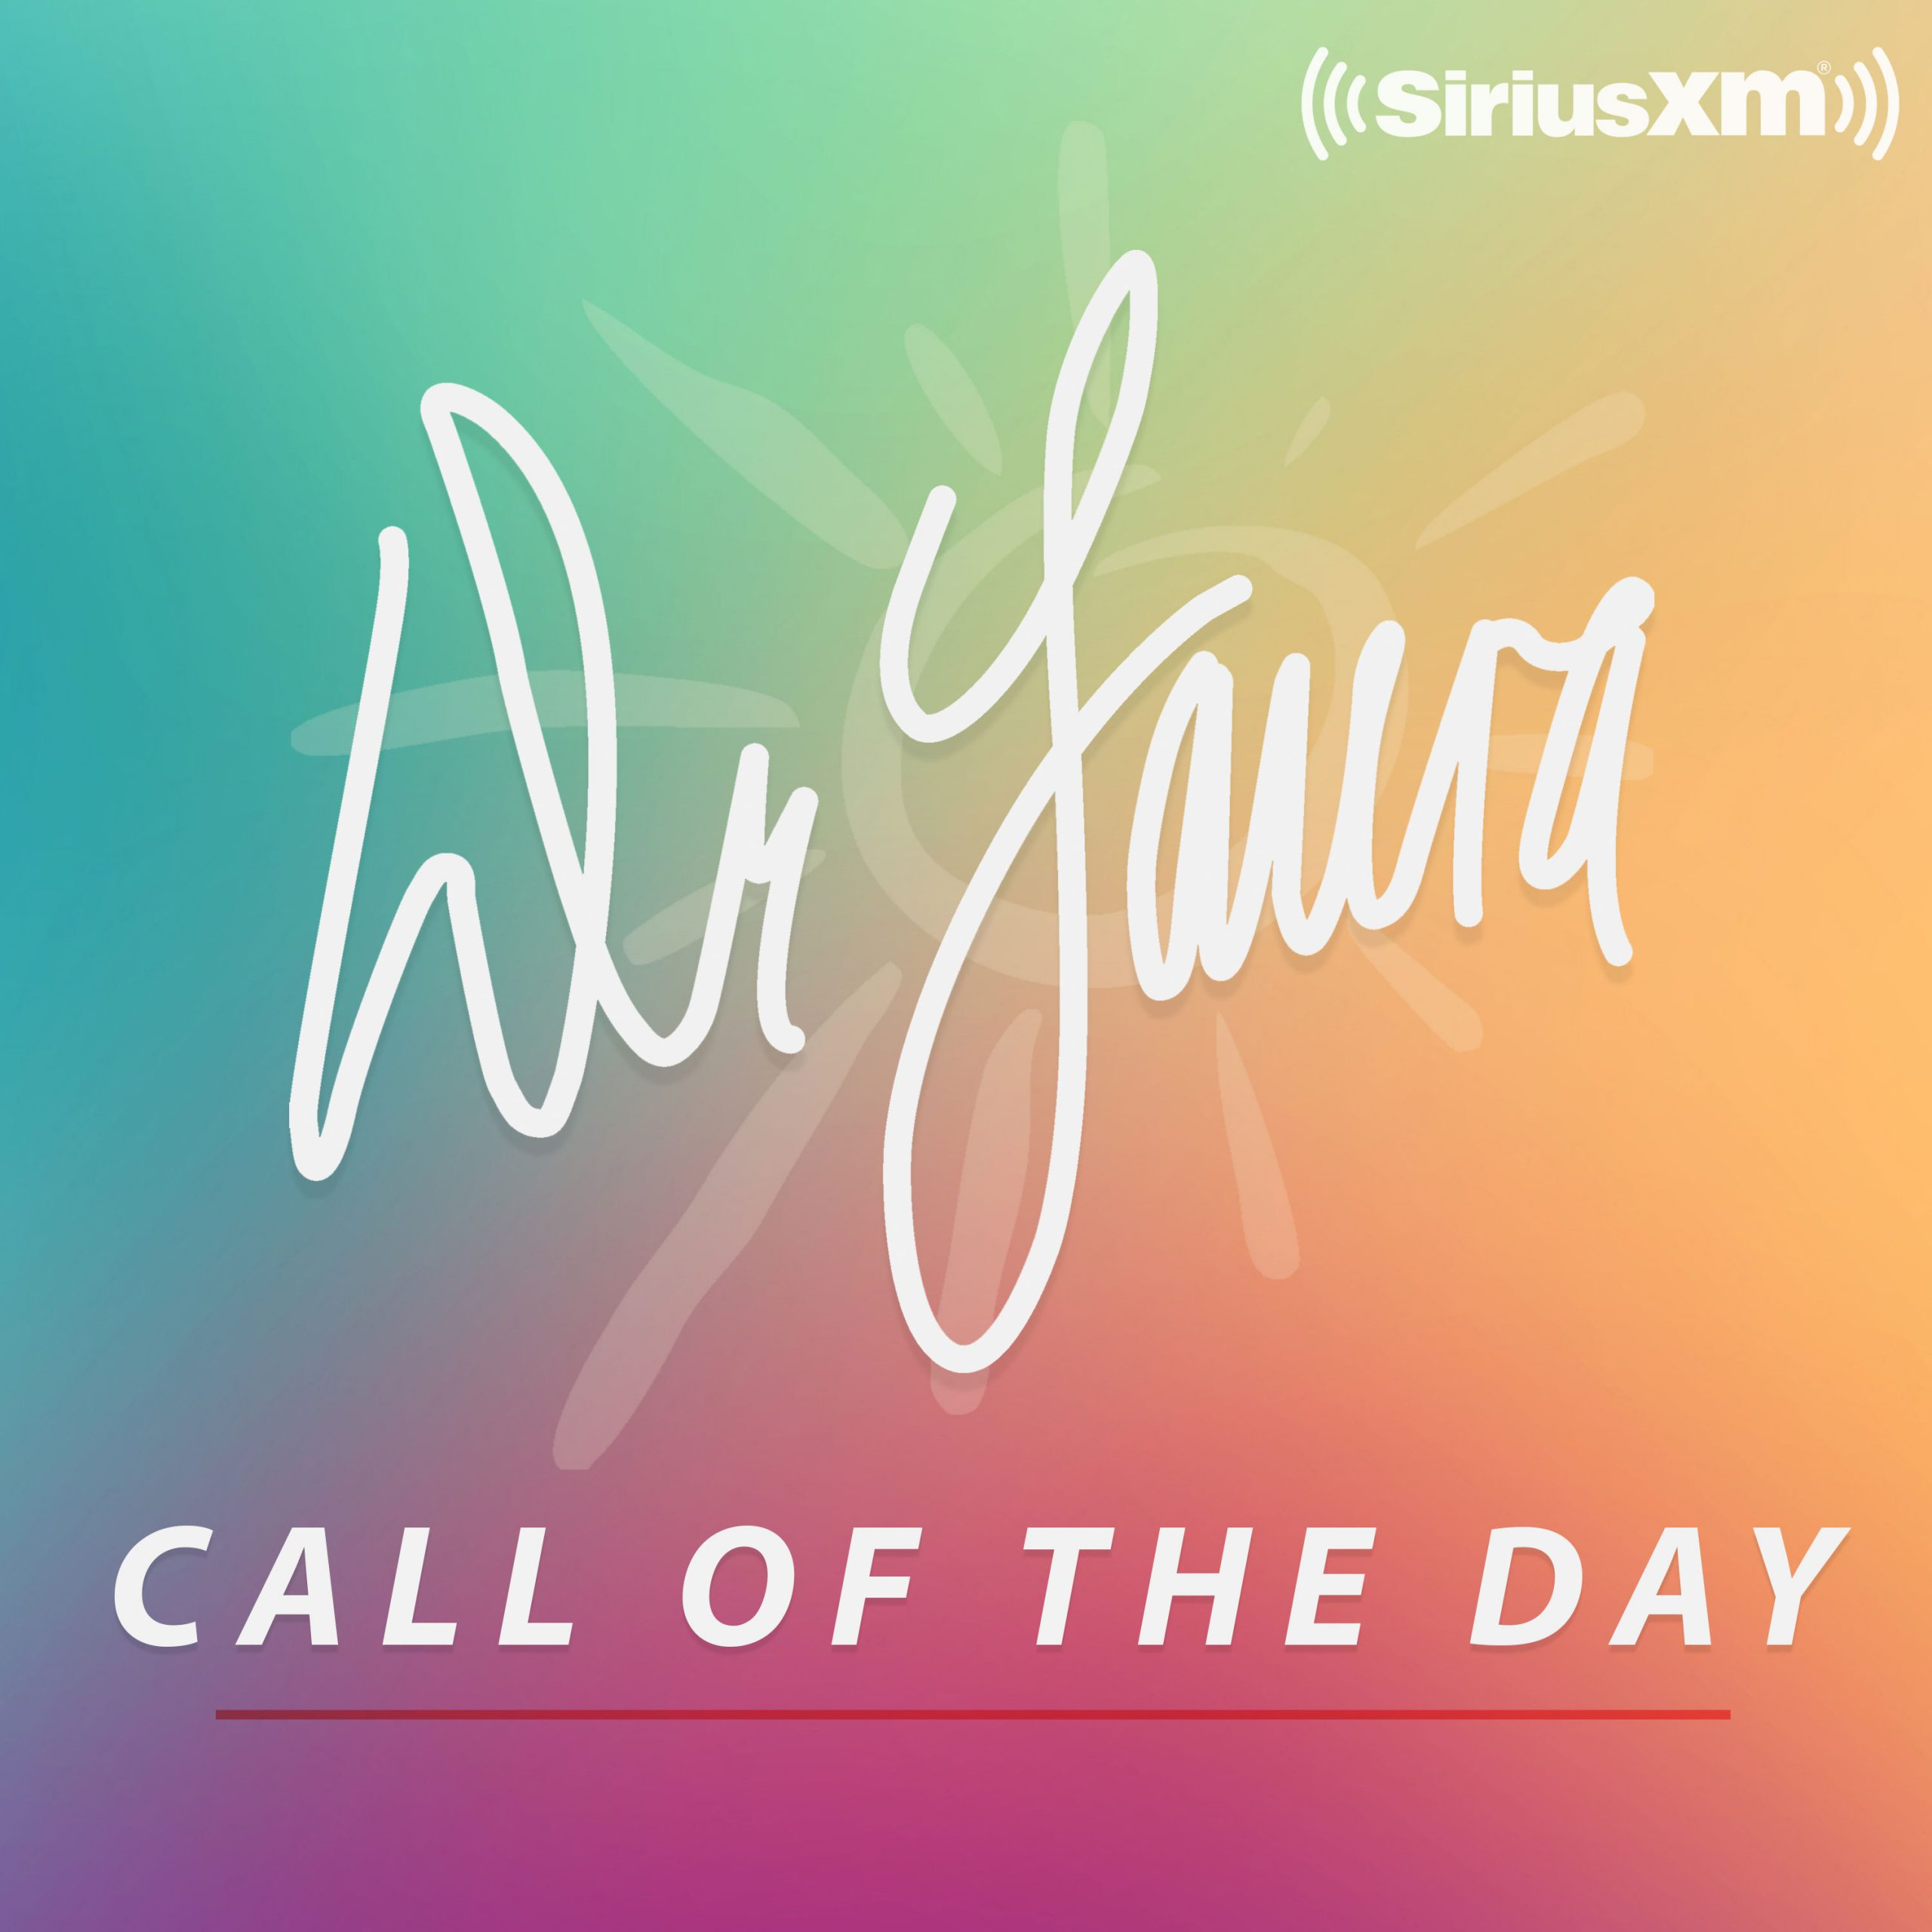 Dr Laura – Call of the Day